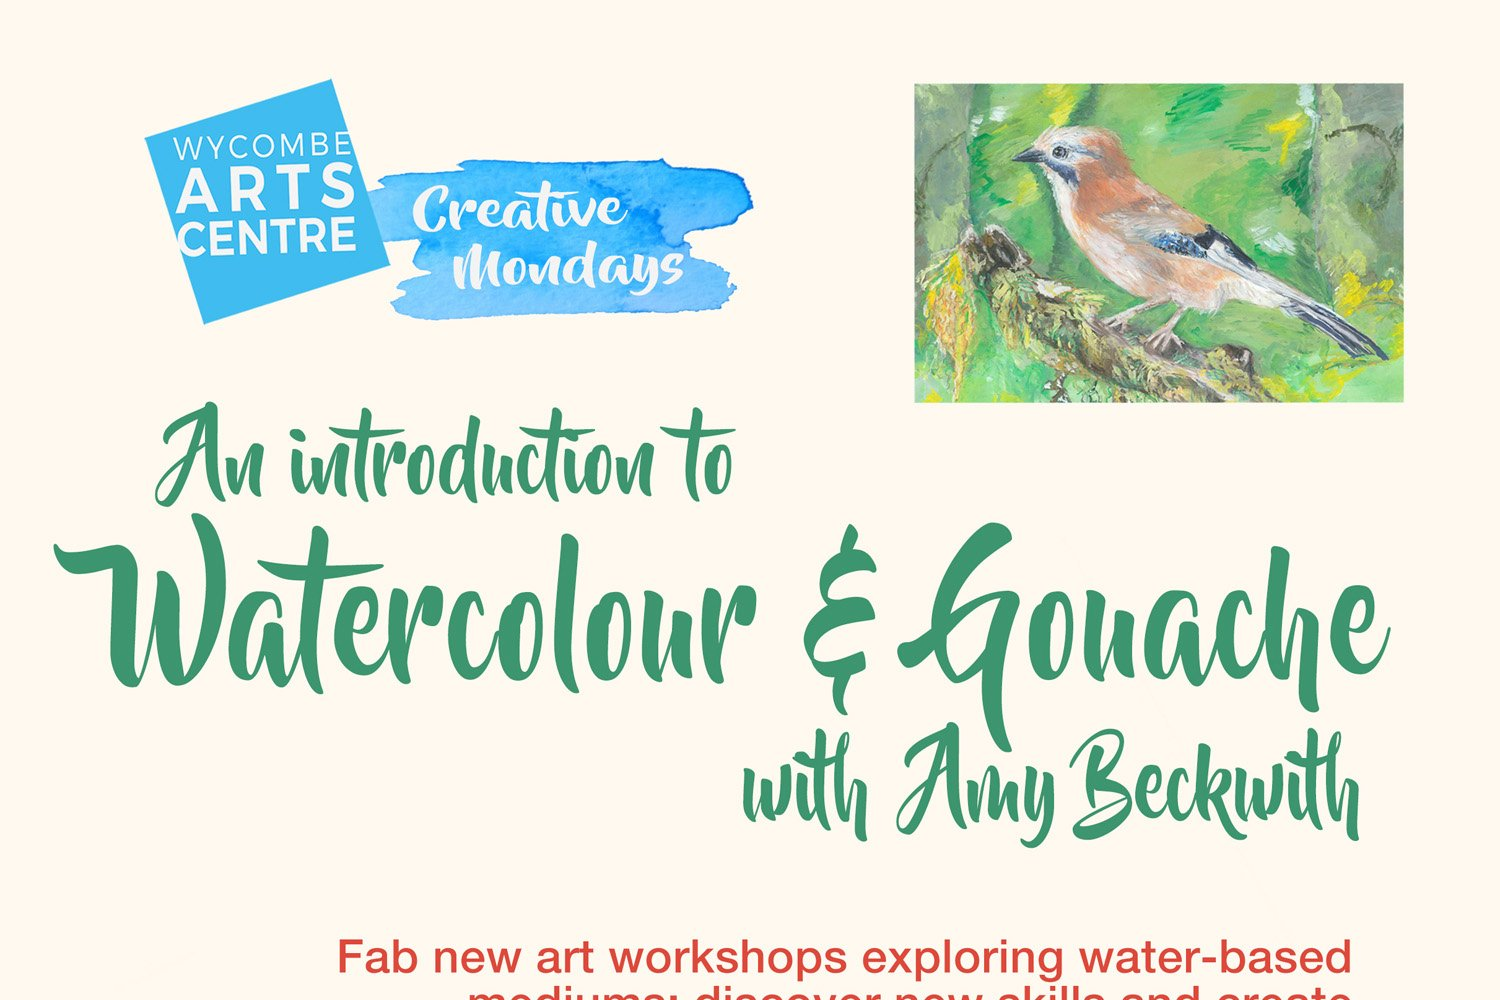 Amy Beckwith Workshops